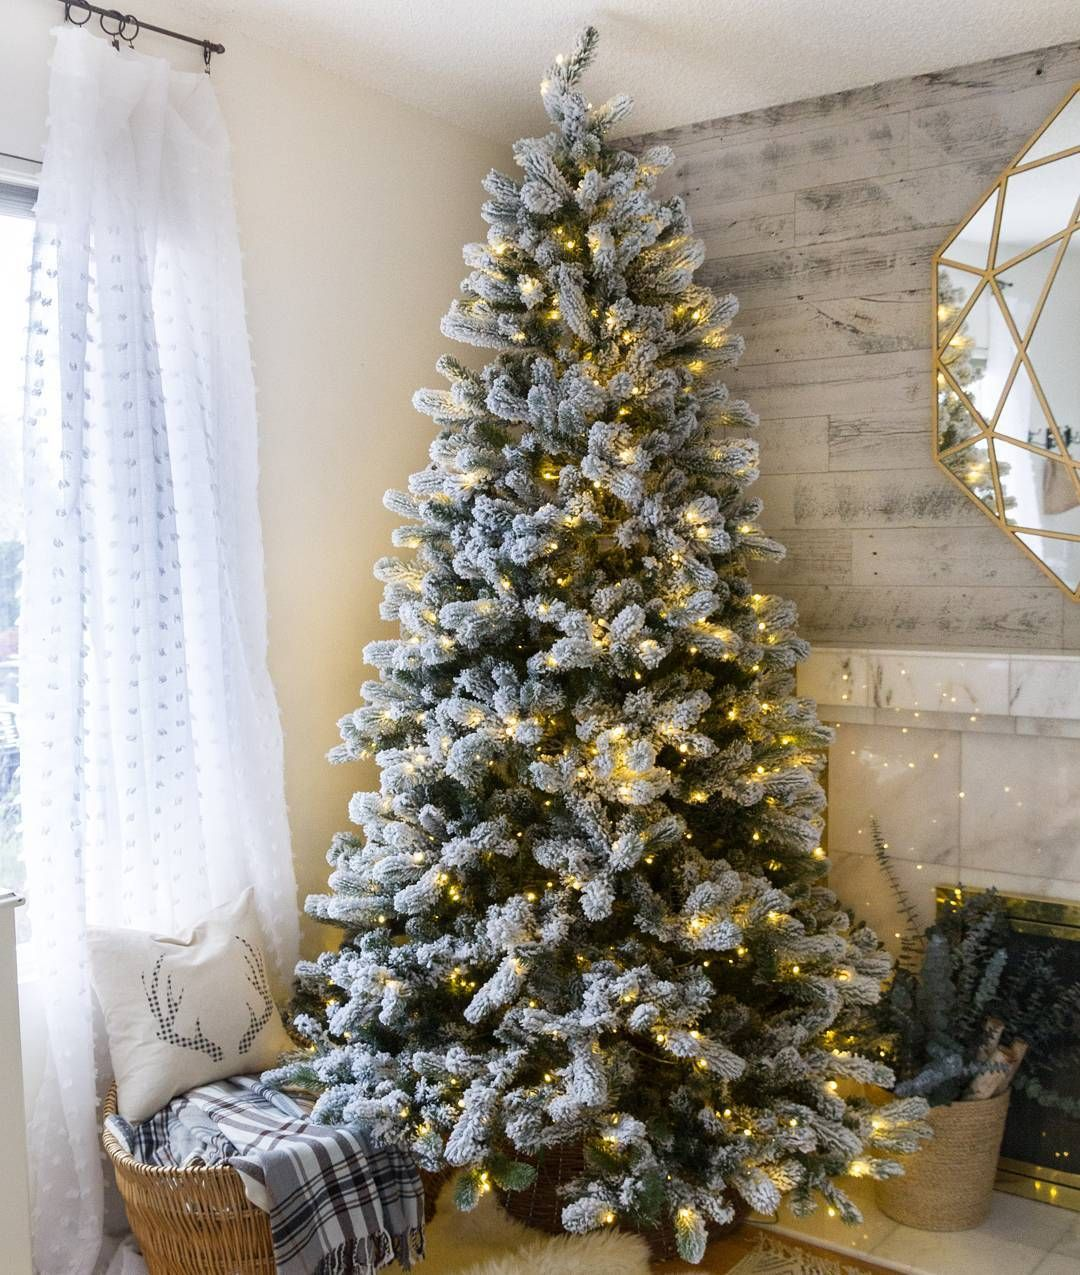 1 290 Likes 5 Comments King Of Christmas Kingofchristmas On Instagram Christmas Tree Pictures Frosted Christmas Tree Flocked Christmas Trees Decorated